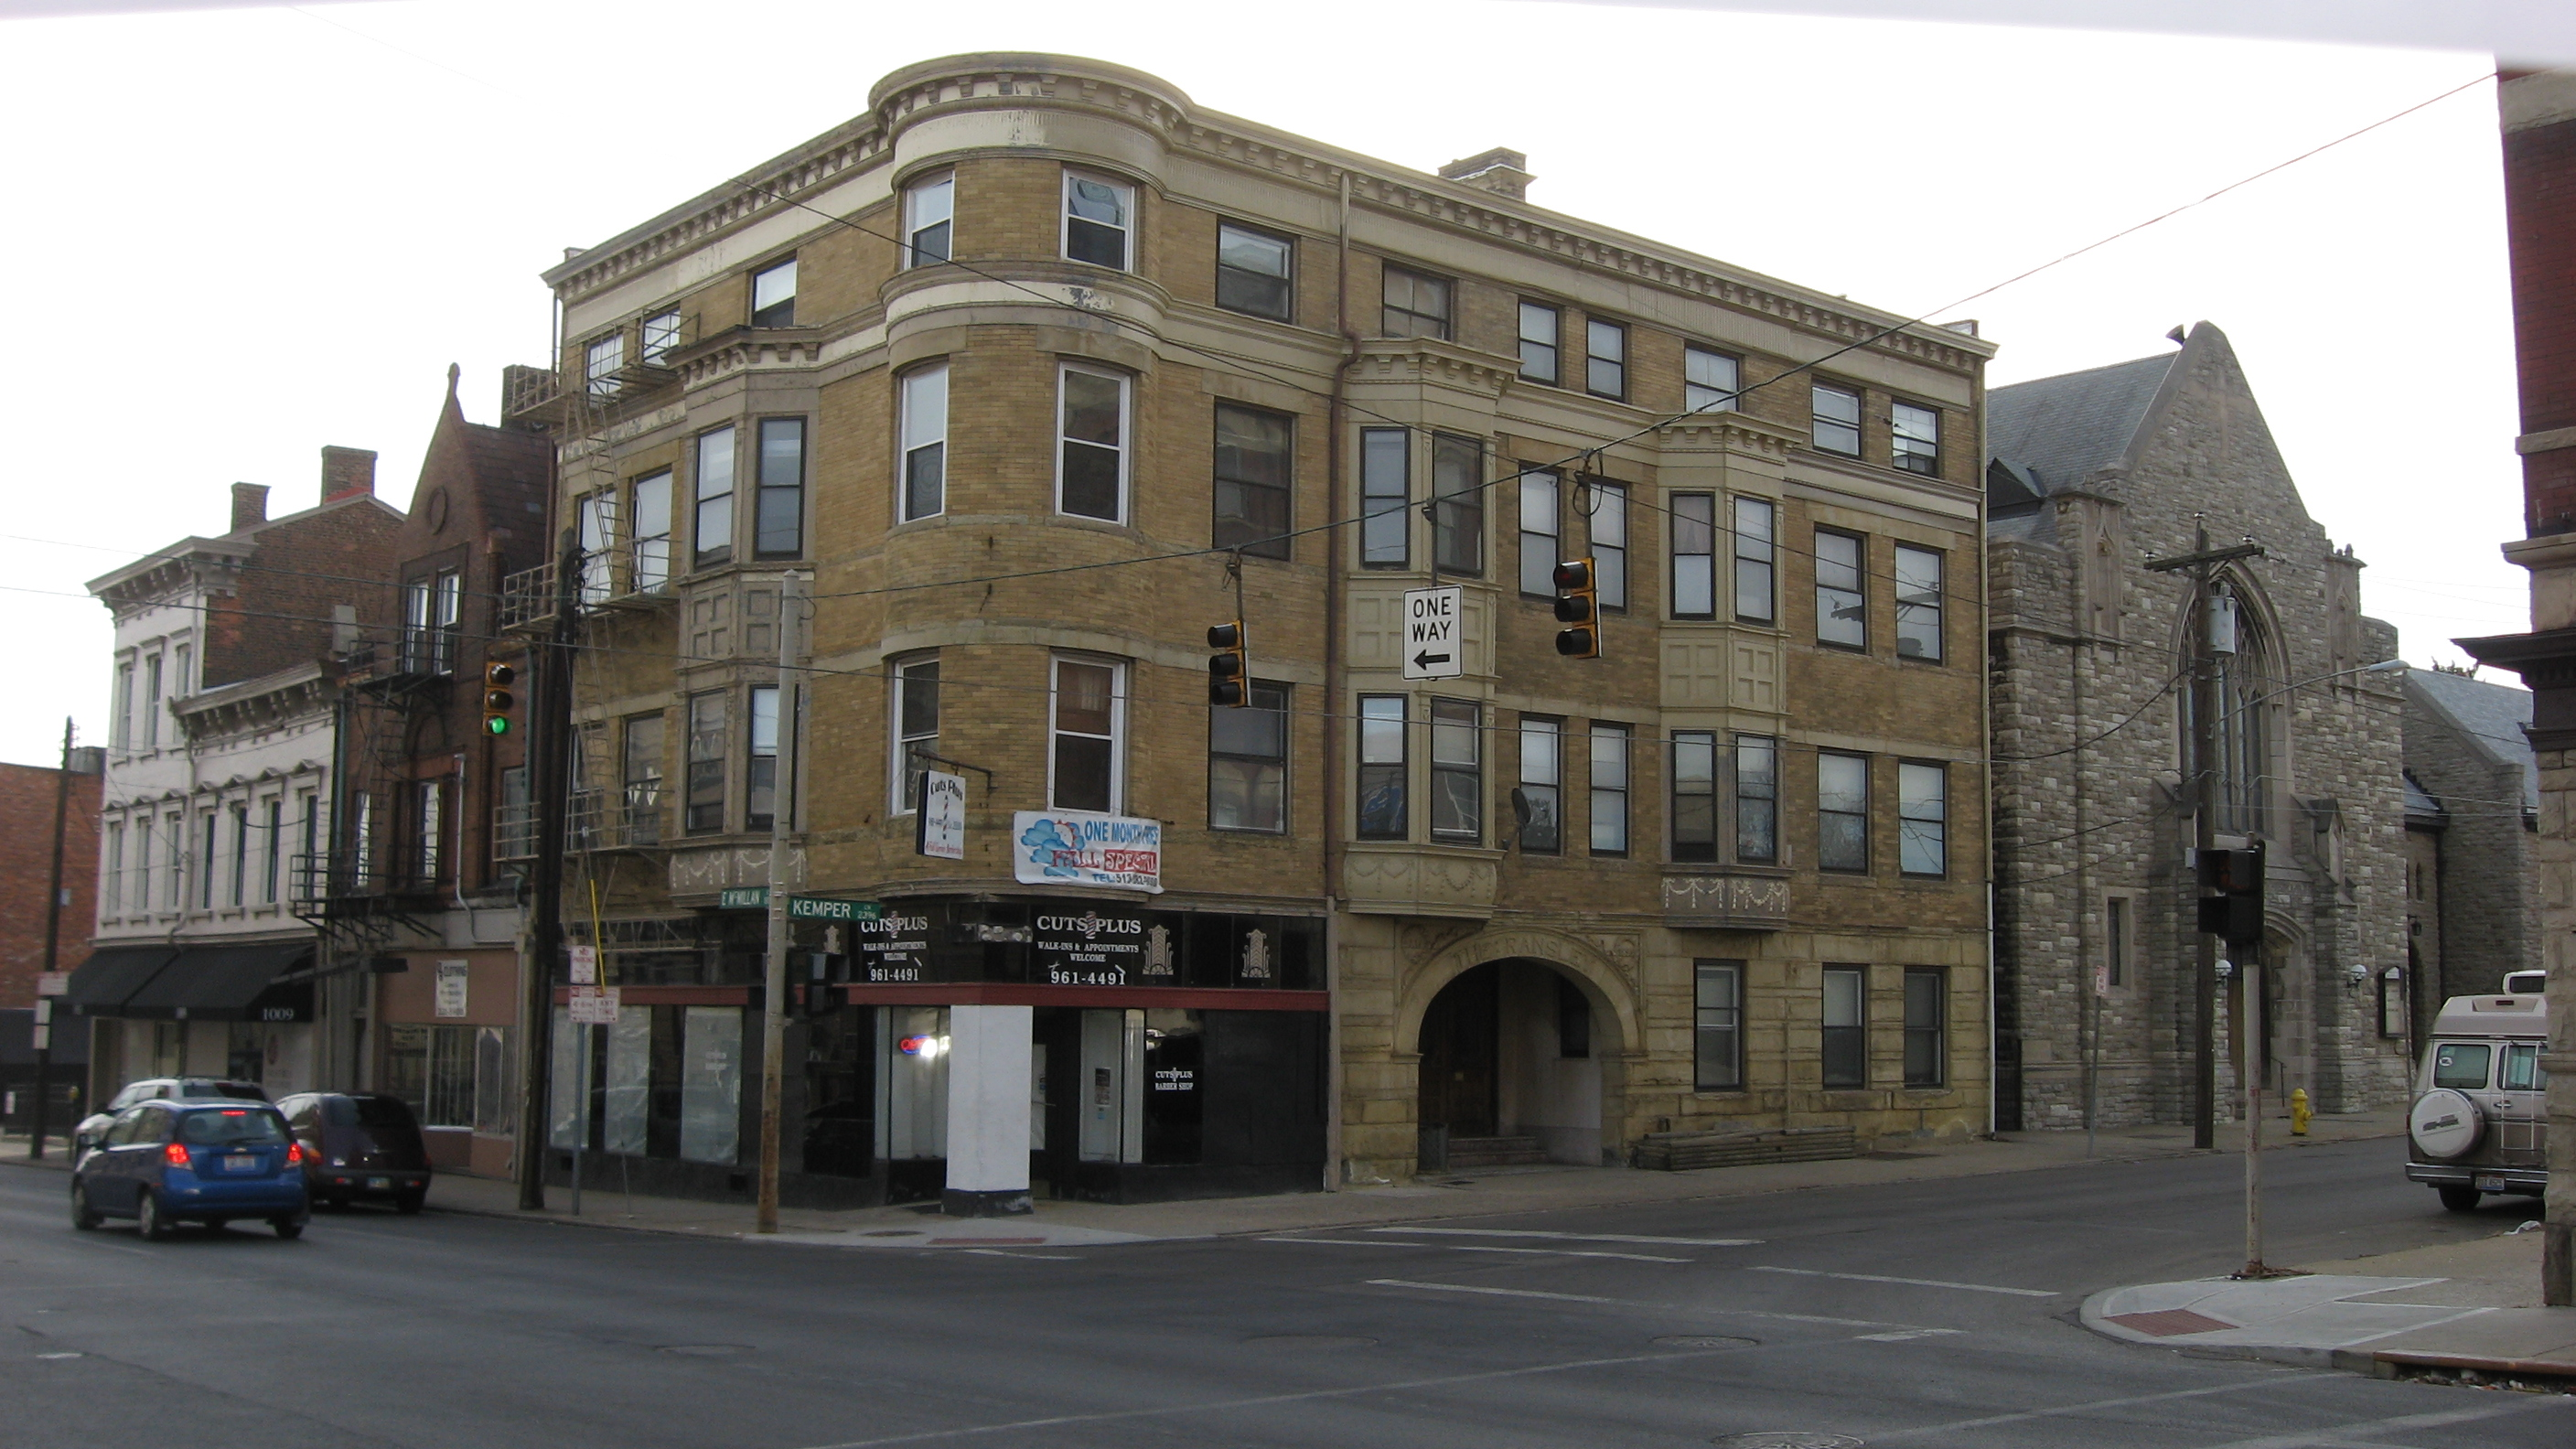 file:ransley apartment building - wikimedia commons